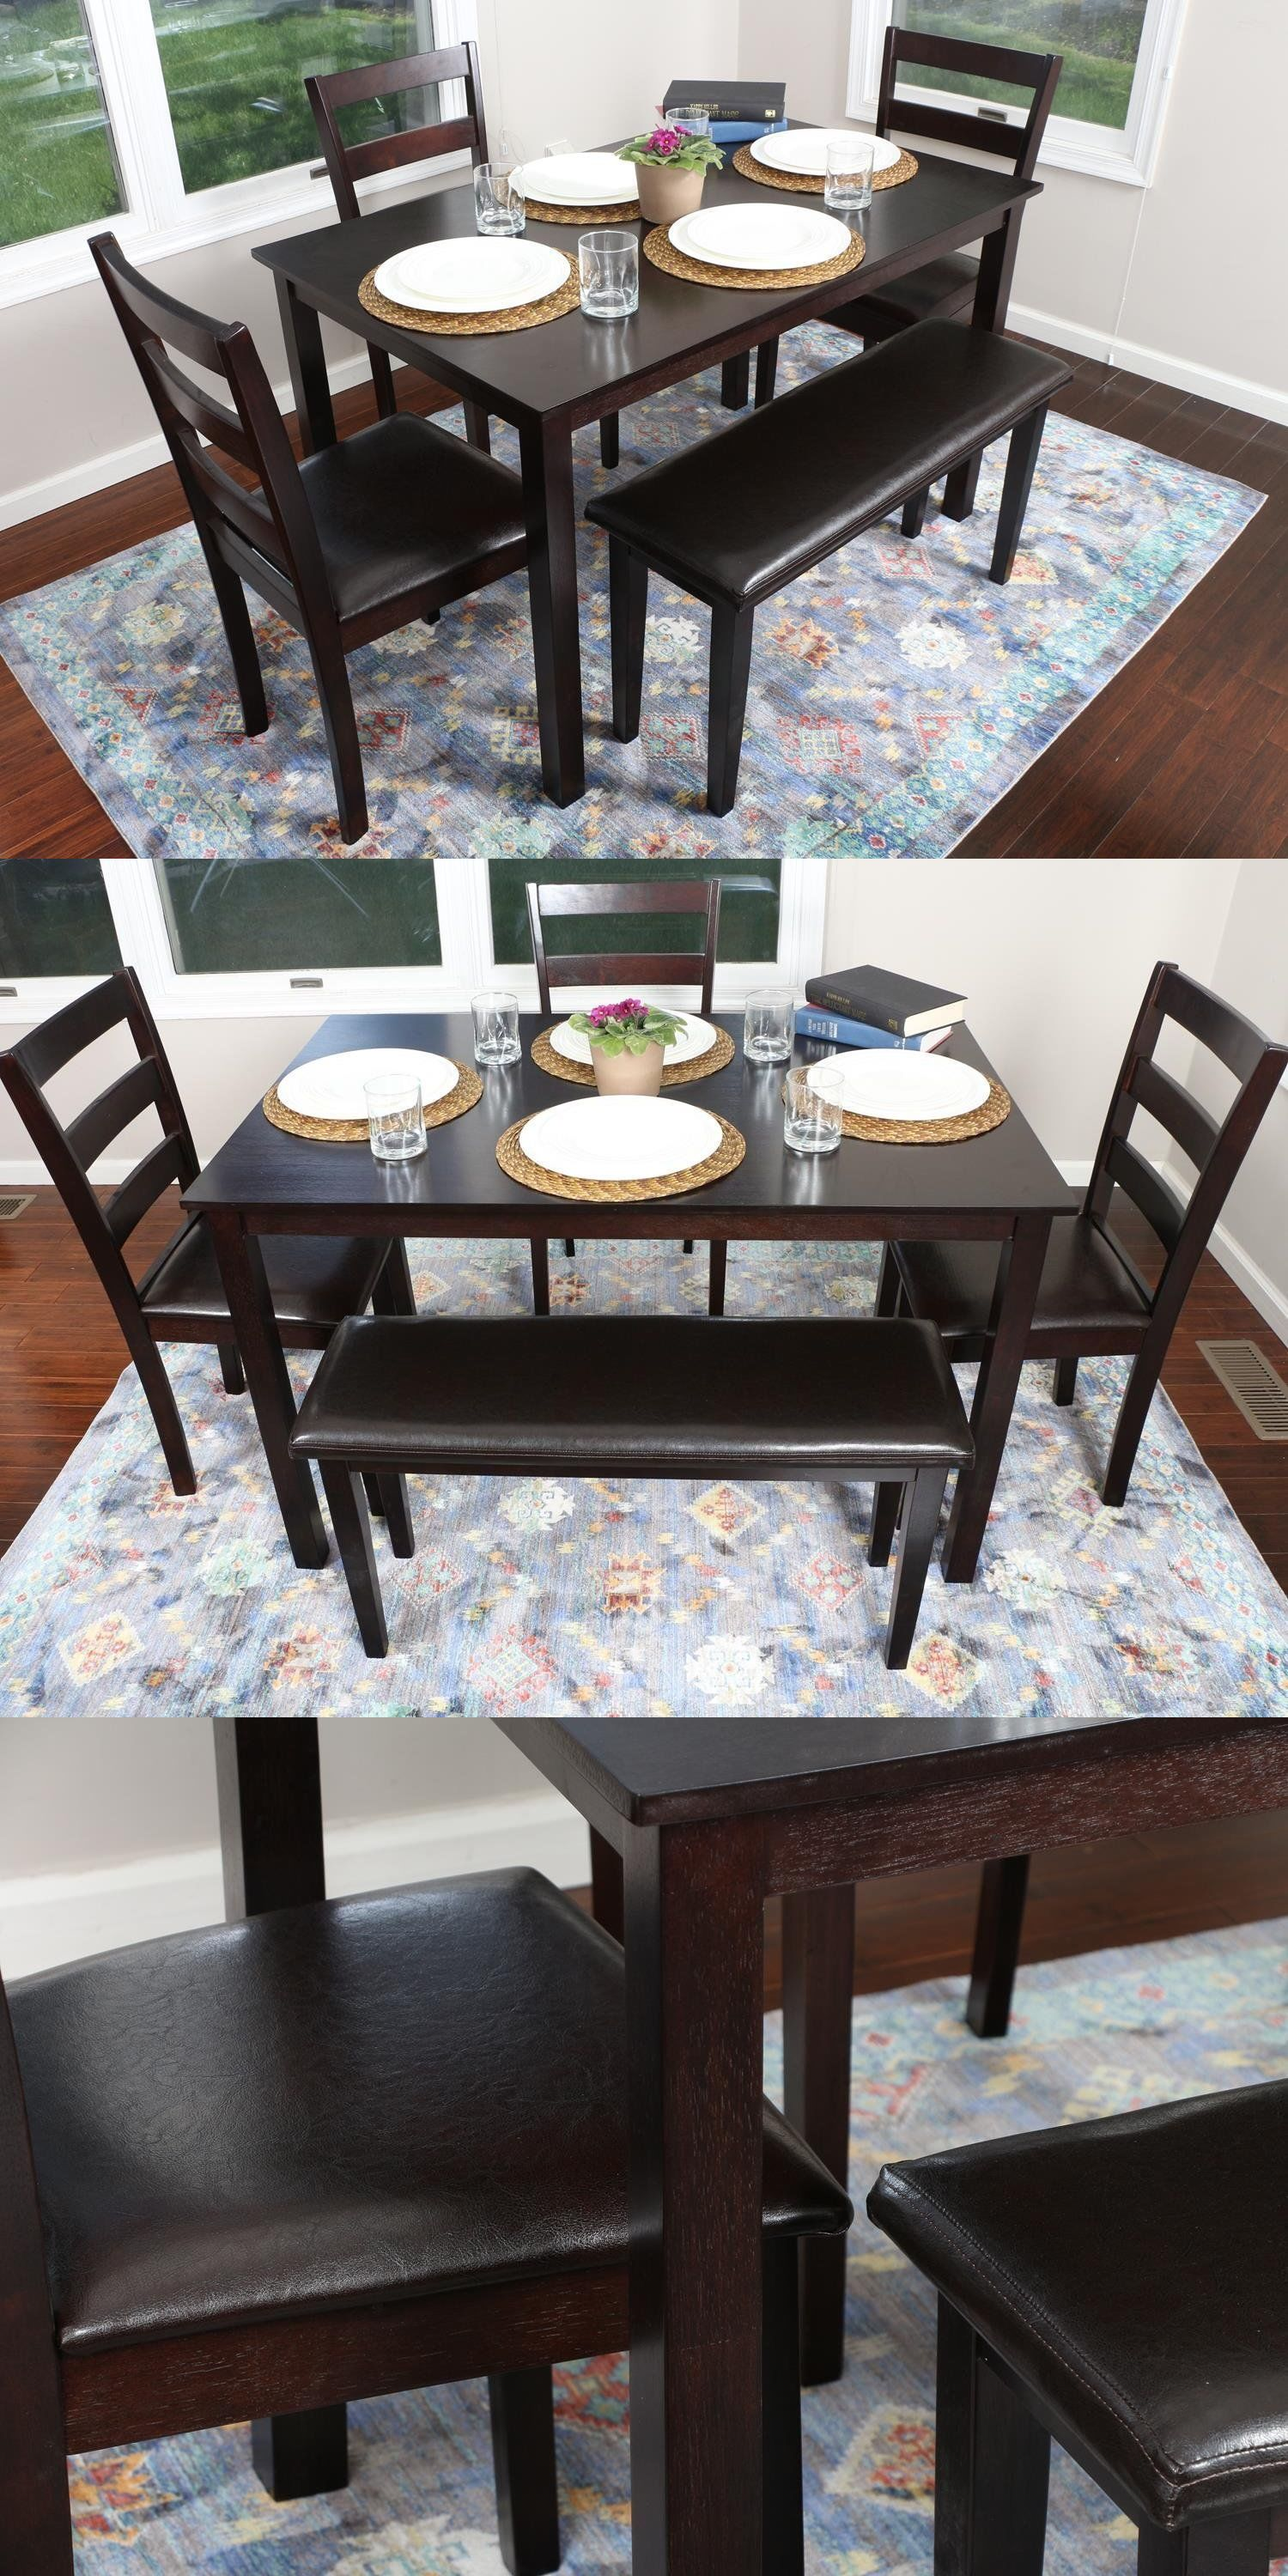 Dining Sets 107578 5 Piece Kitchen Table Set Bench Espresso Brown 150232 BUY IT NOW ONLY 250 On EBay